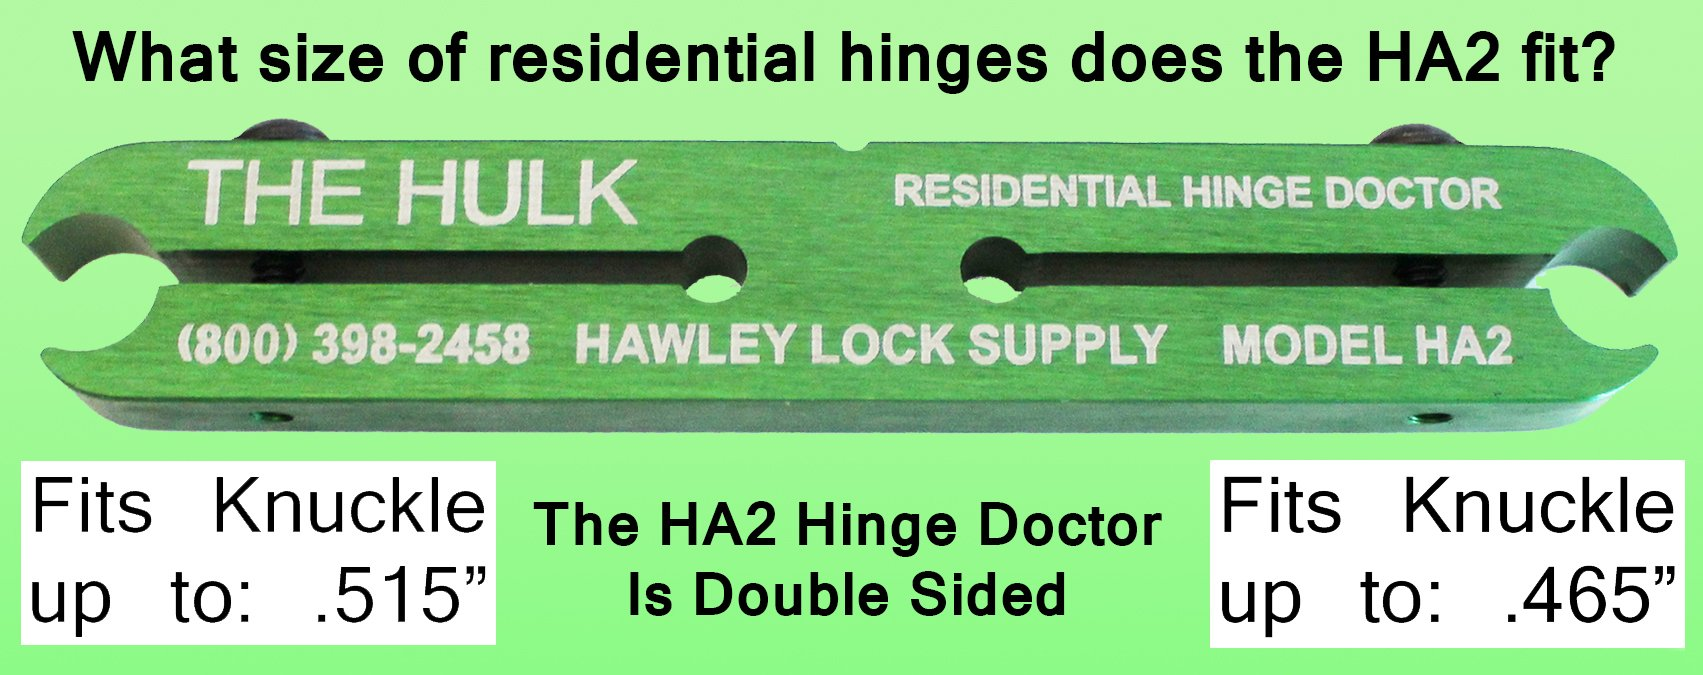 The Hinge Doctor HA2 for residential hinges. by Hinge Doctor